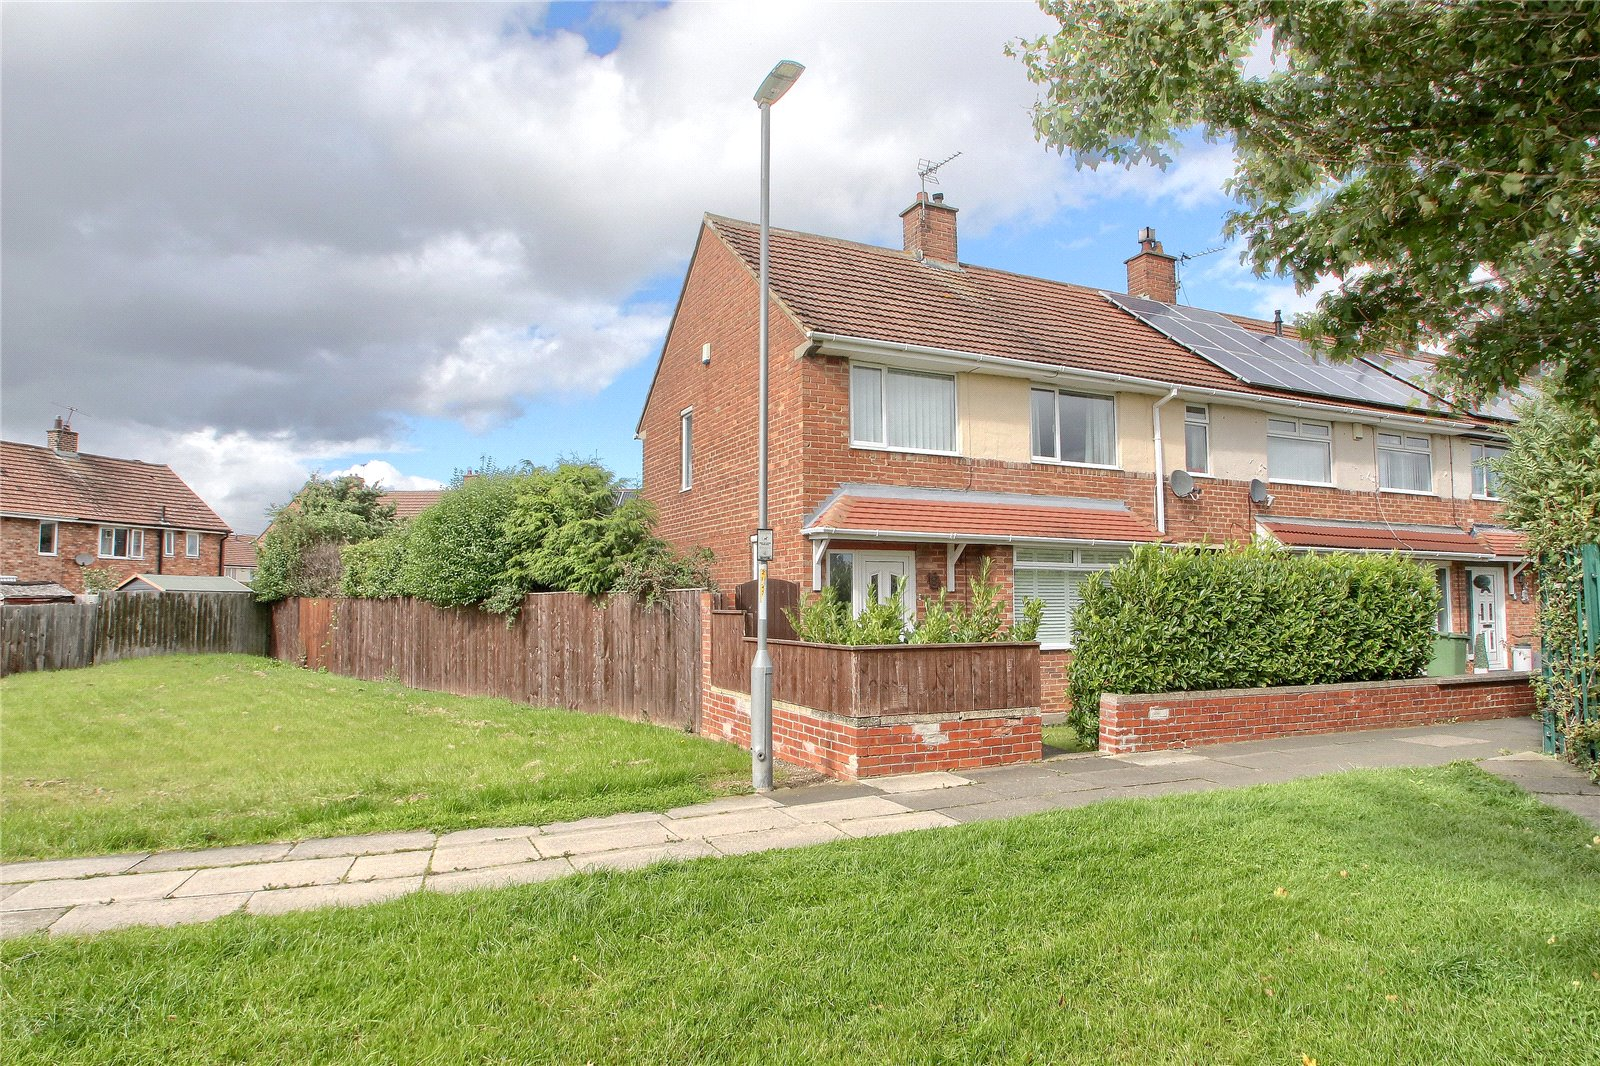 3 bed house for sale in Langham Walk, Fairfield - Property Image 1